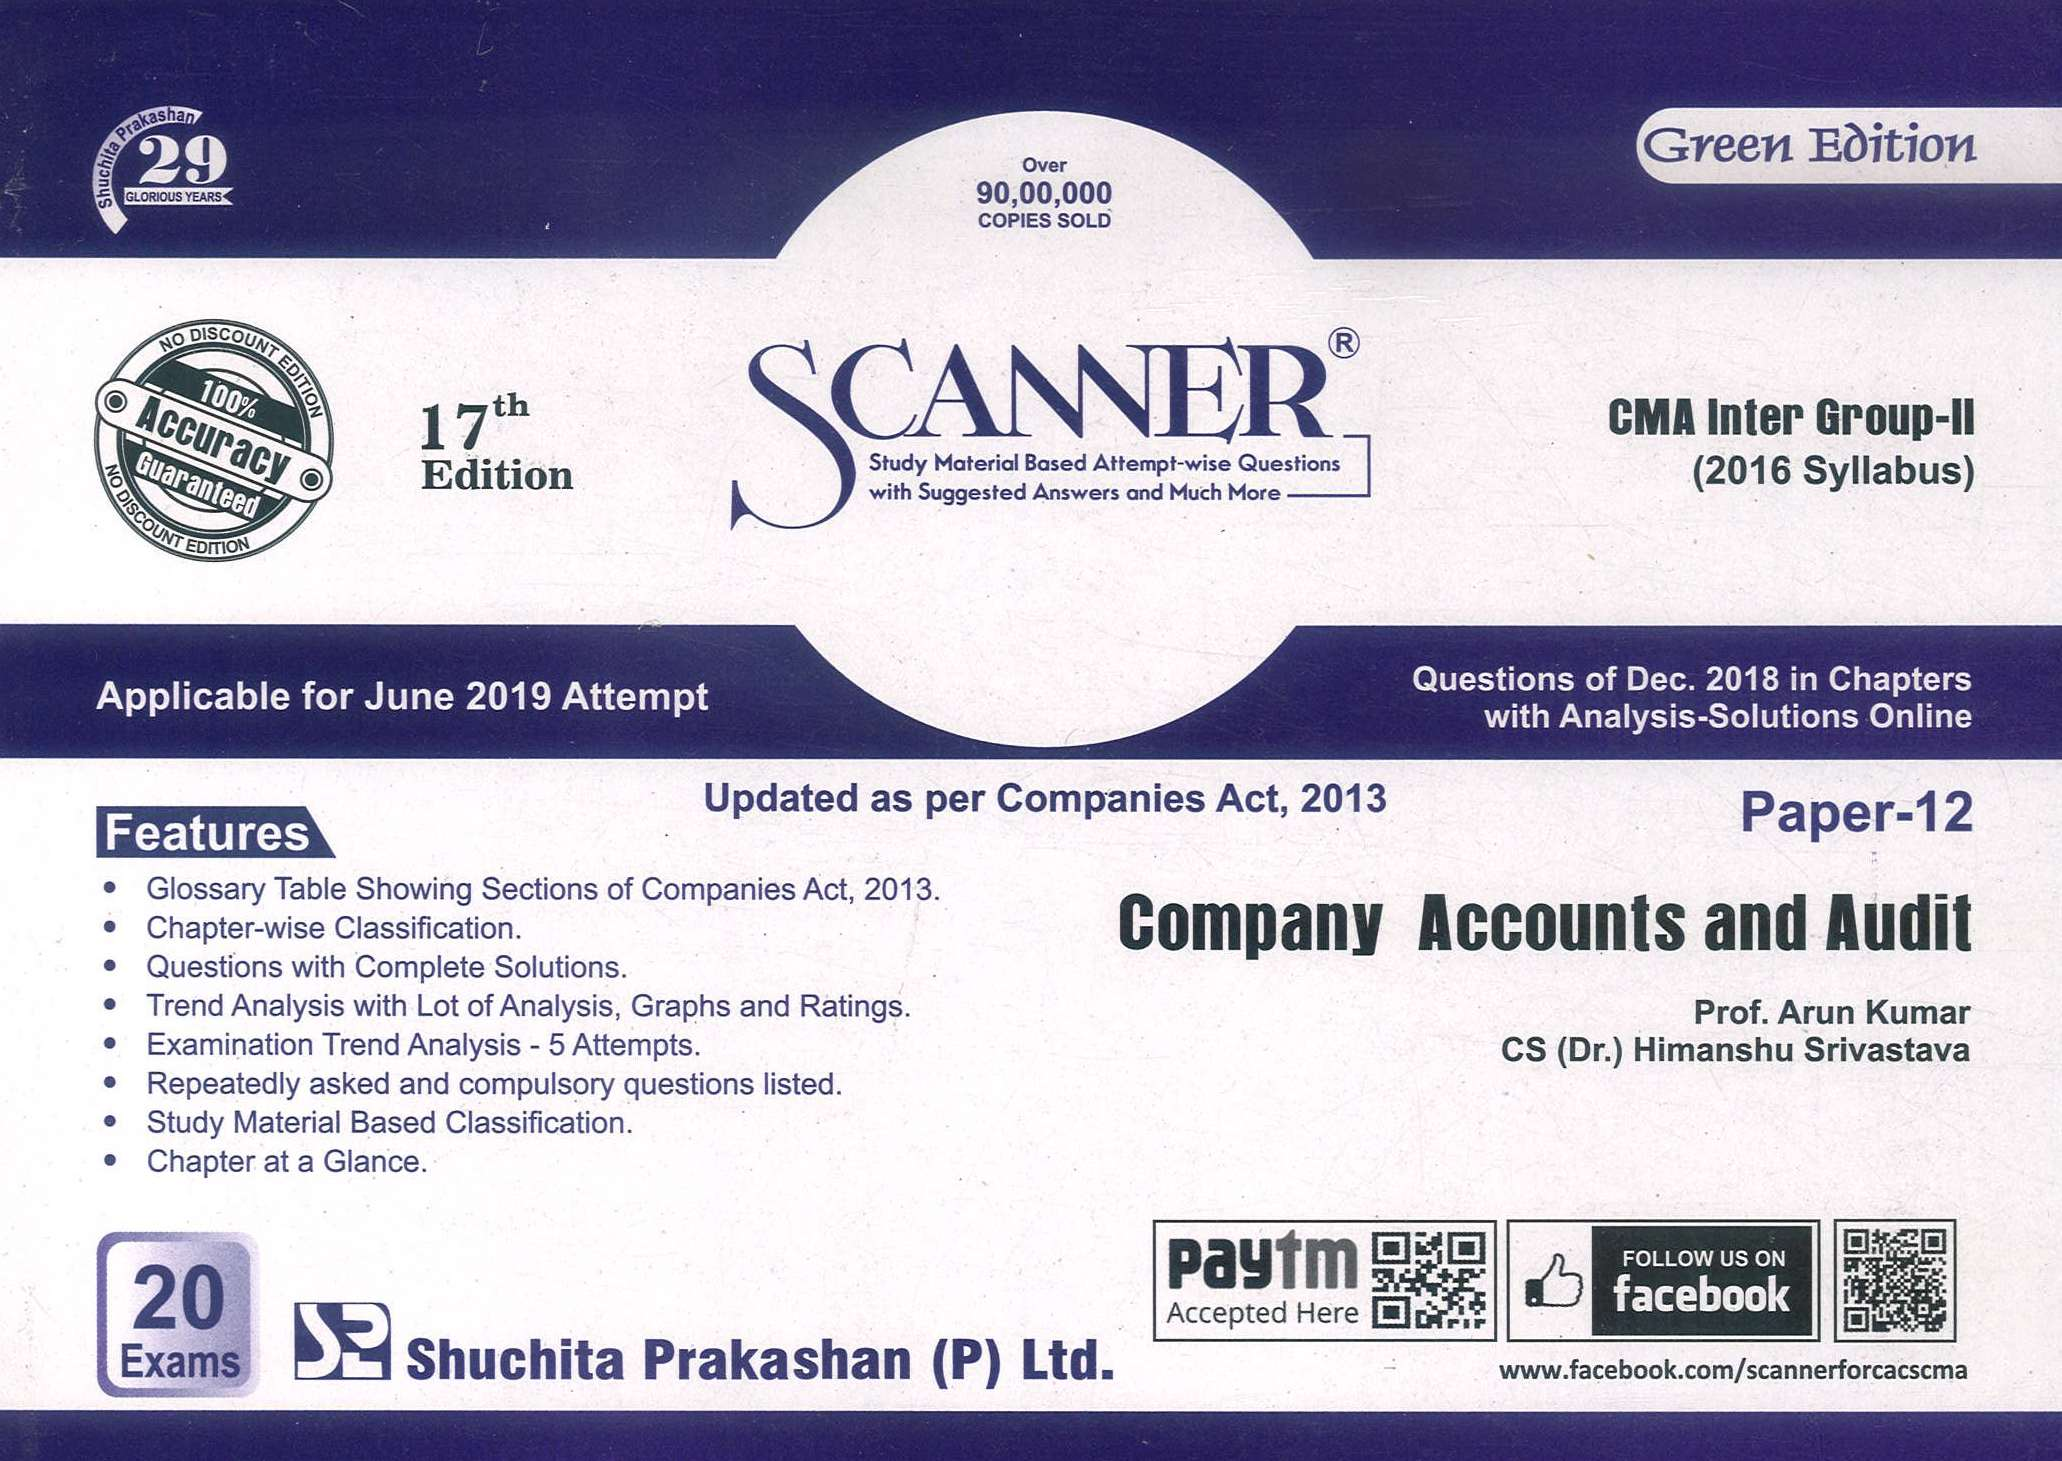 Shuchita Solved Scanner CMA Inter Group-II (New Syllabus) Paper-12 Company Accounts and Audit By Prof. Arun Kumar and CS (Dr.) Himanshu Srivastava Applicable for June 2019 Exam (Shuchita Prakashan) 17th Edition 2018 edition